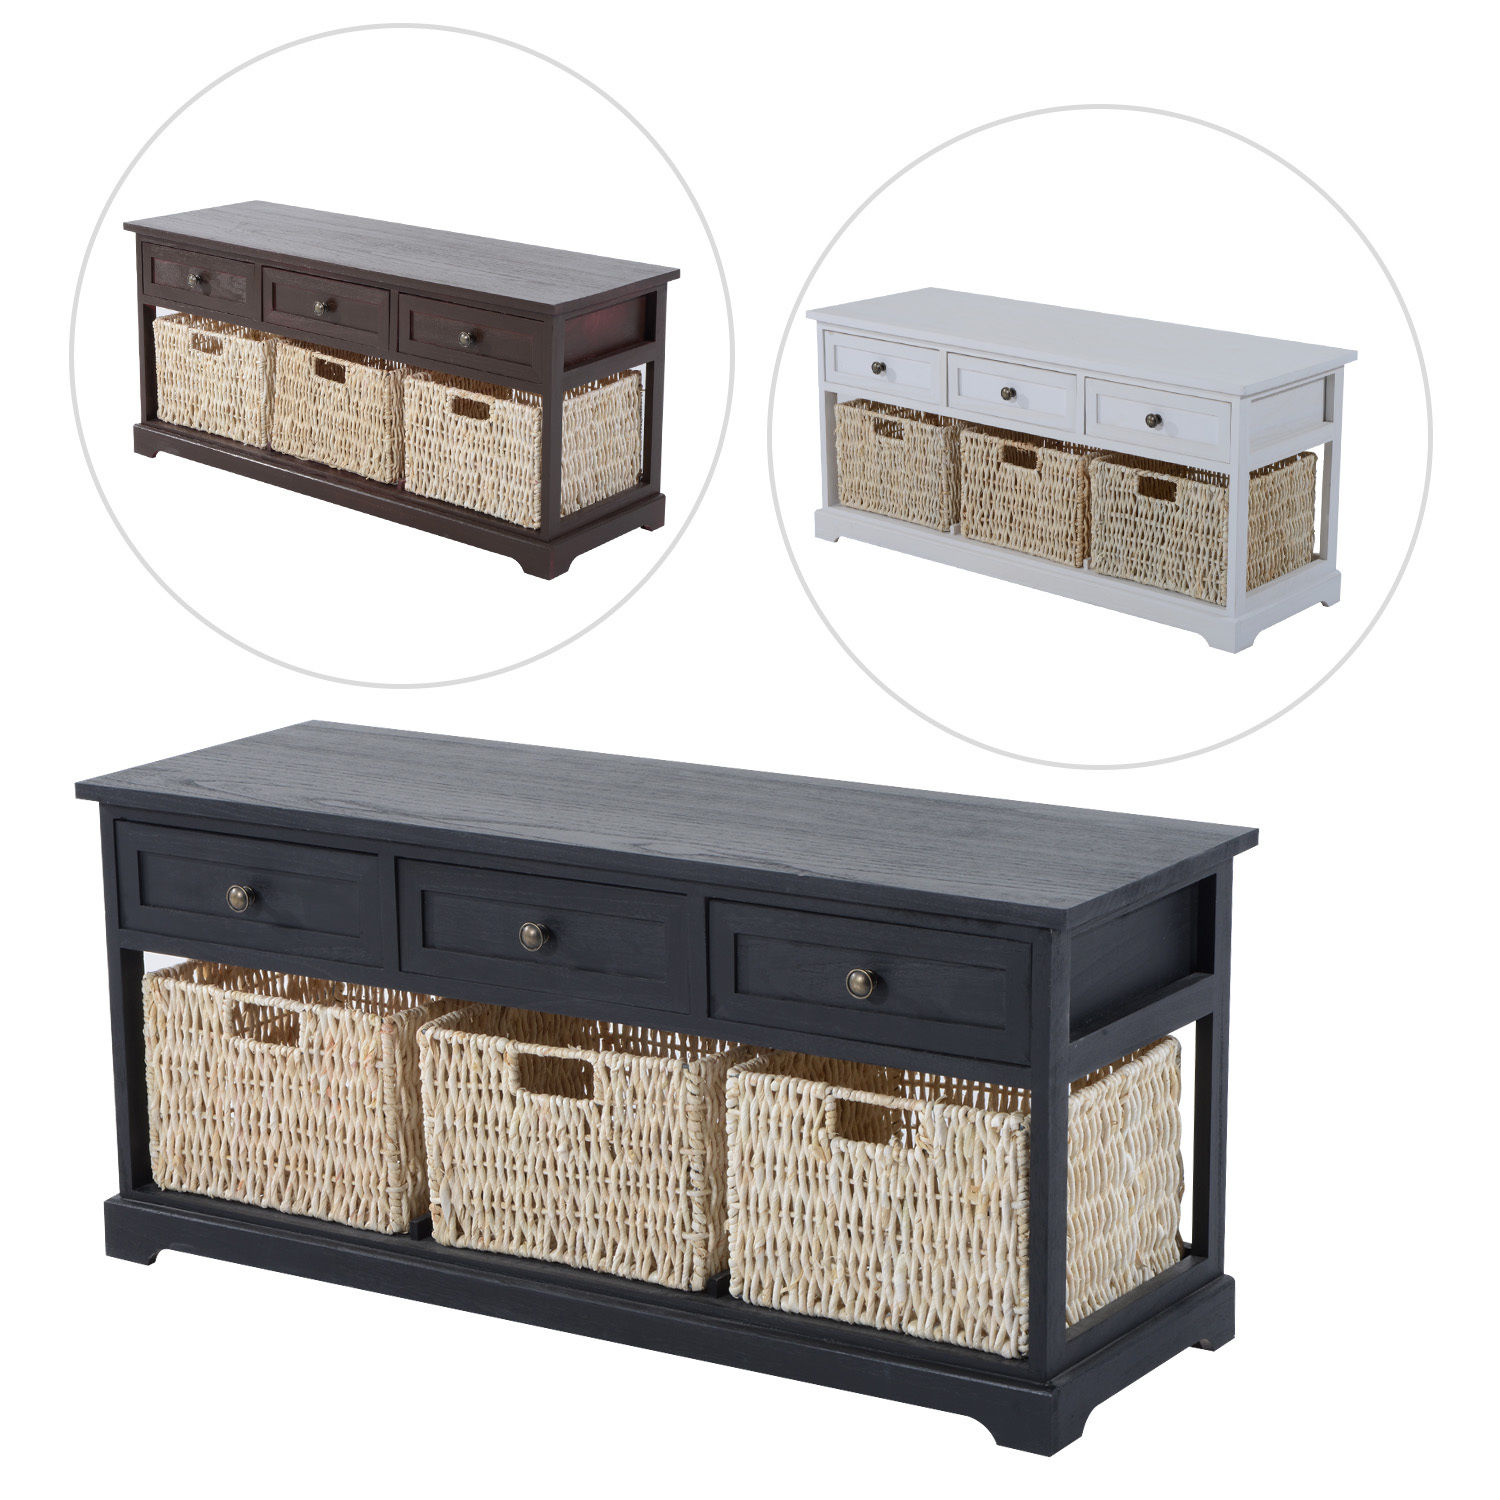 Wooden Storage Bench Details About Entryway Wooden Storage Bench With 3 Drawers Baskets Home Furniture Organizer